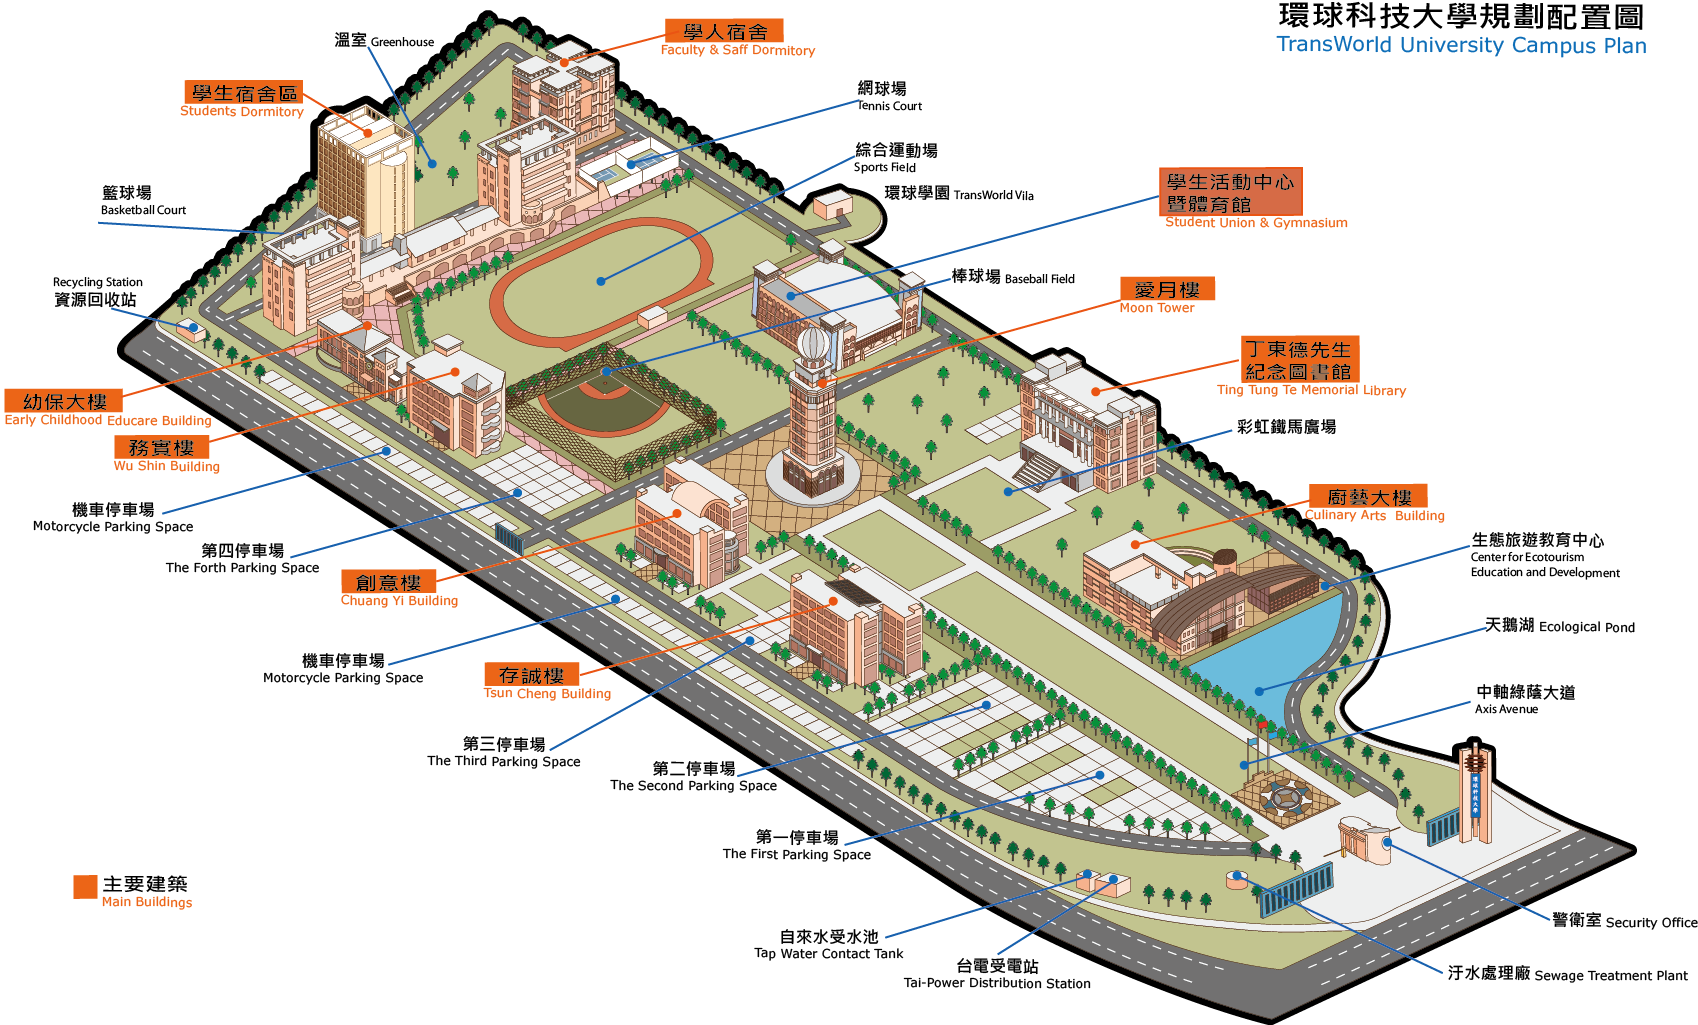 Campus Plan Map